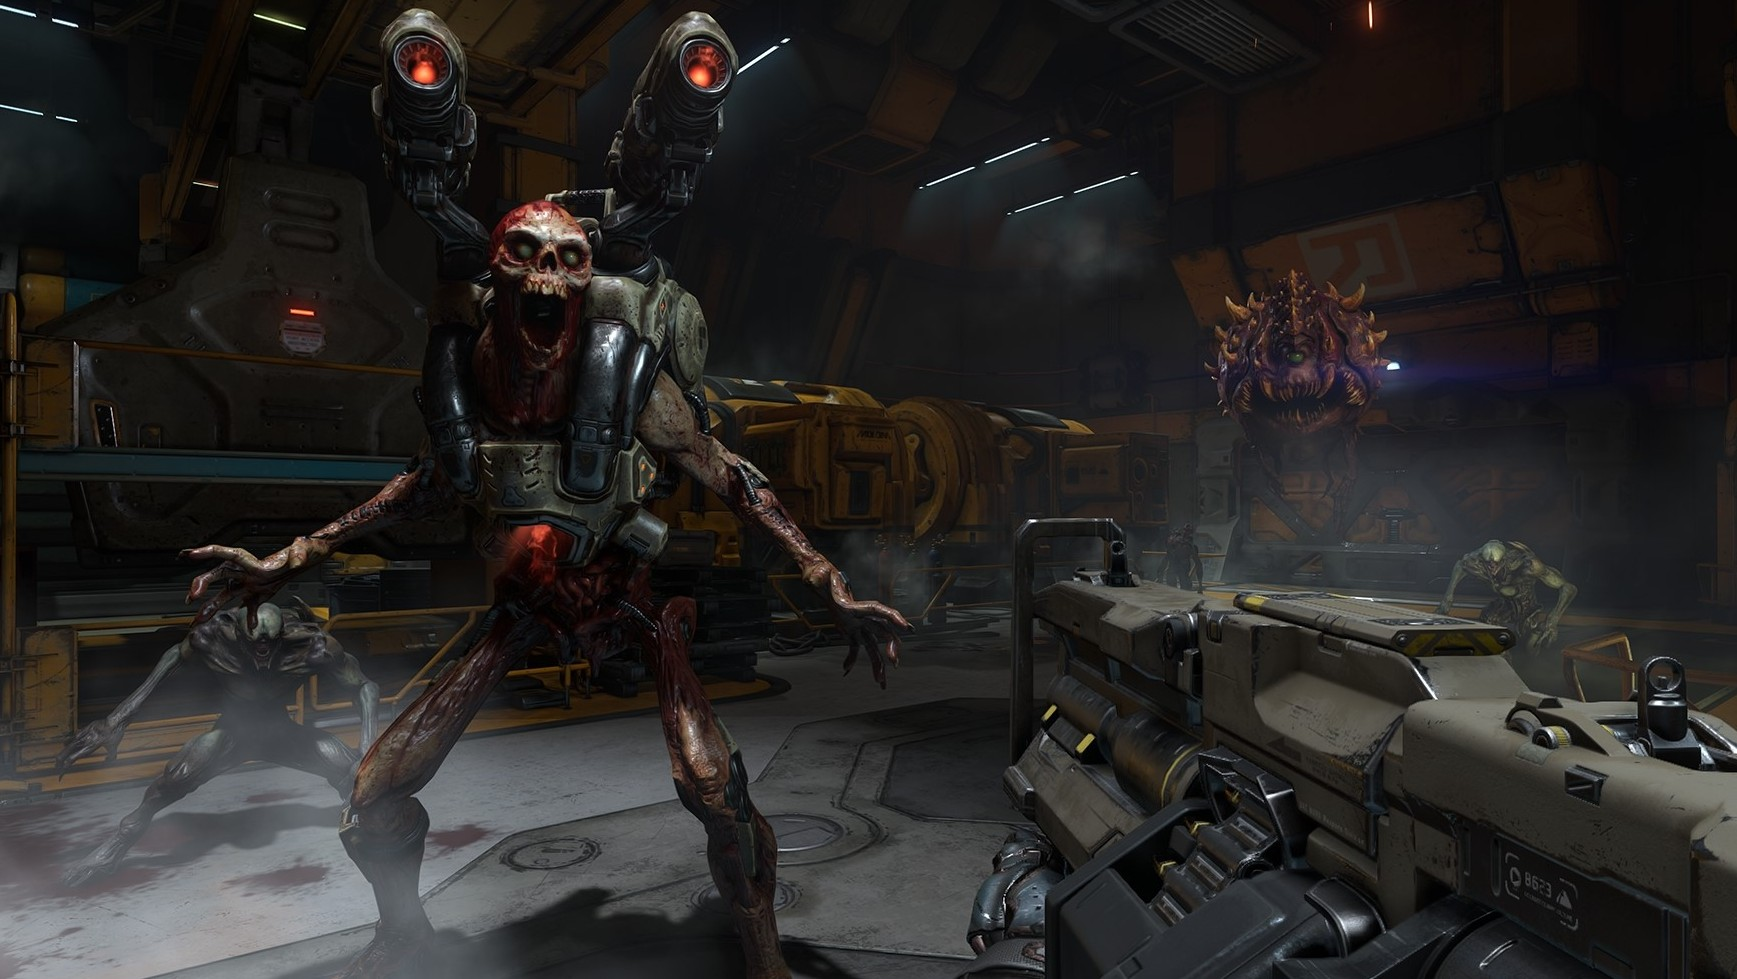 Guns And Gore In DOOMs Bloody Launch Trailer DOOM 2016 Revenant Fight 1437988262 e1452134870141